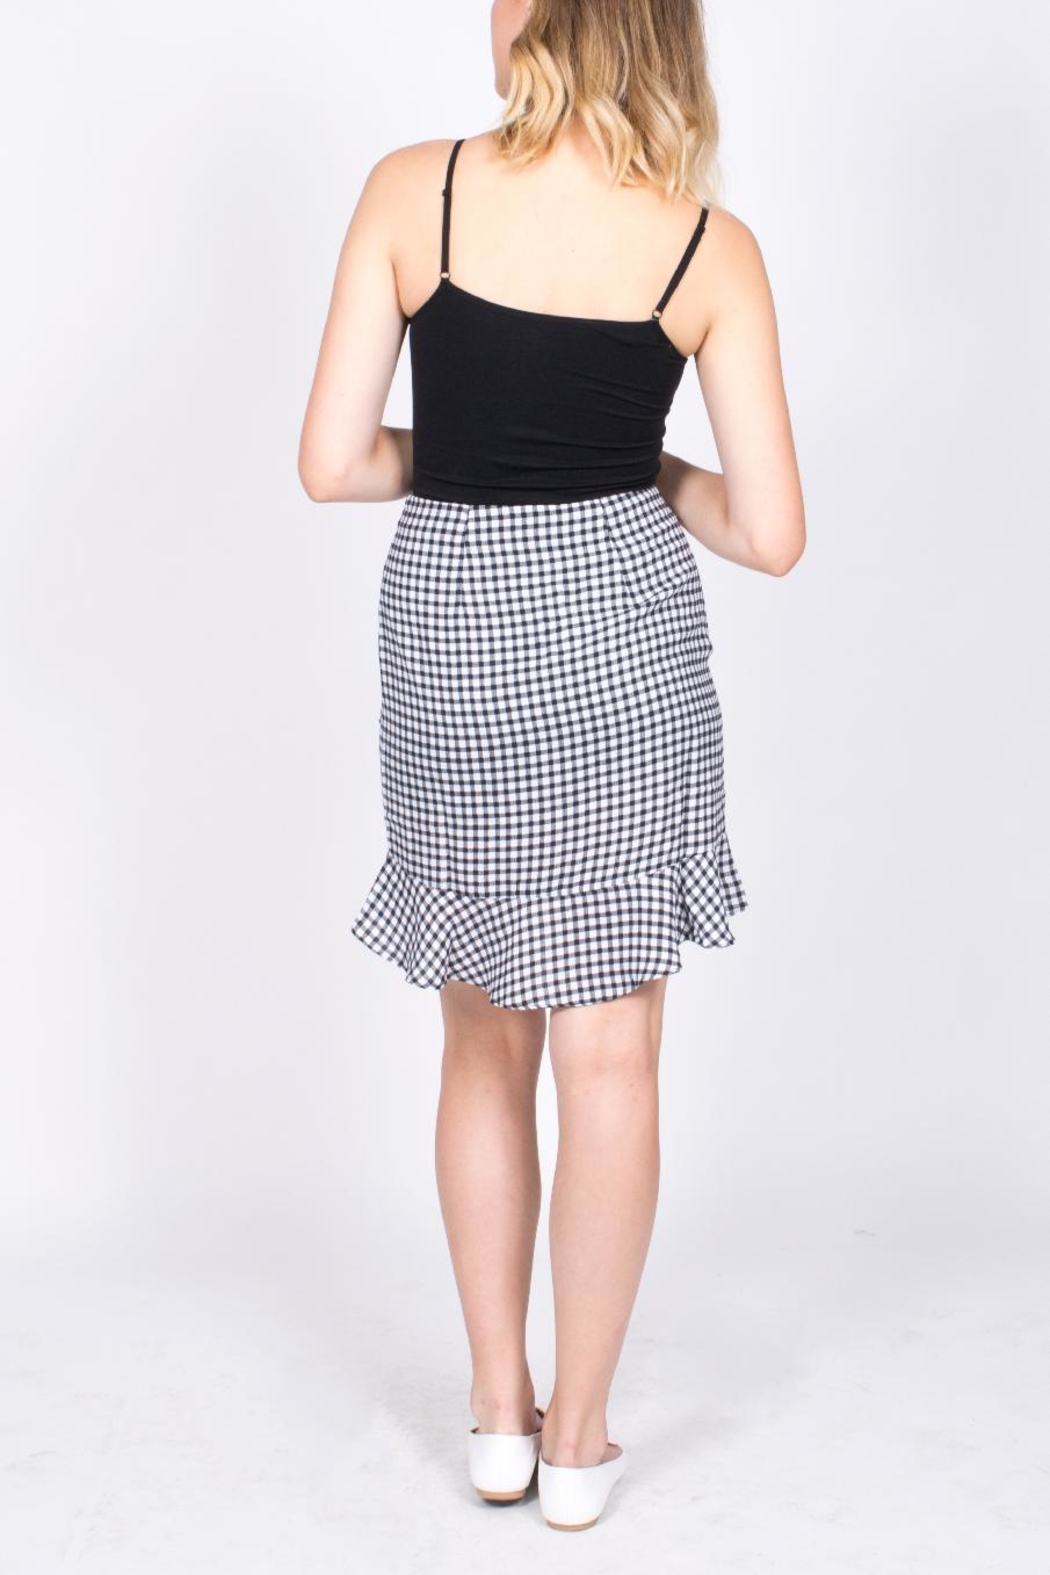 Sugarlips Gingham Ruffle Skirt - Side Cropped Image